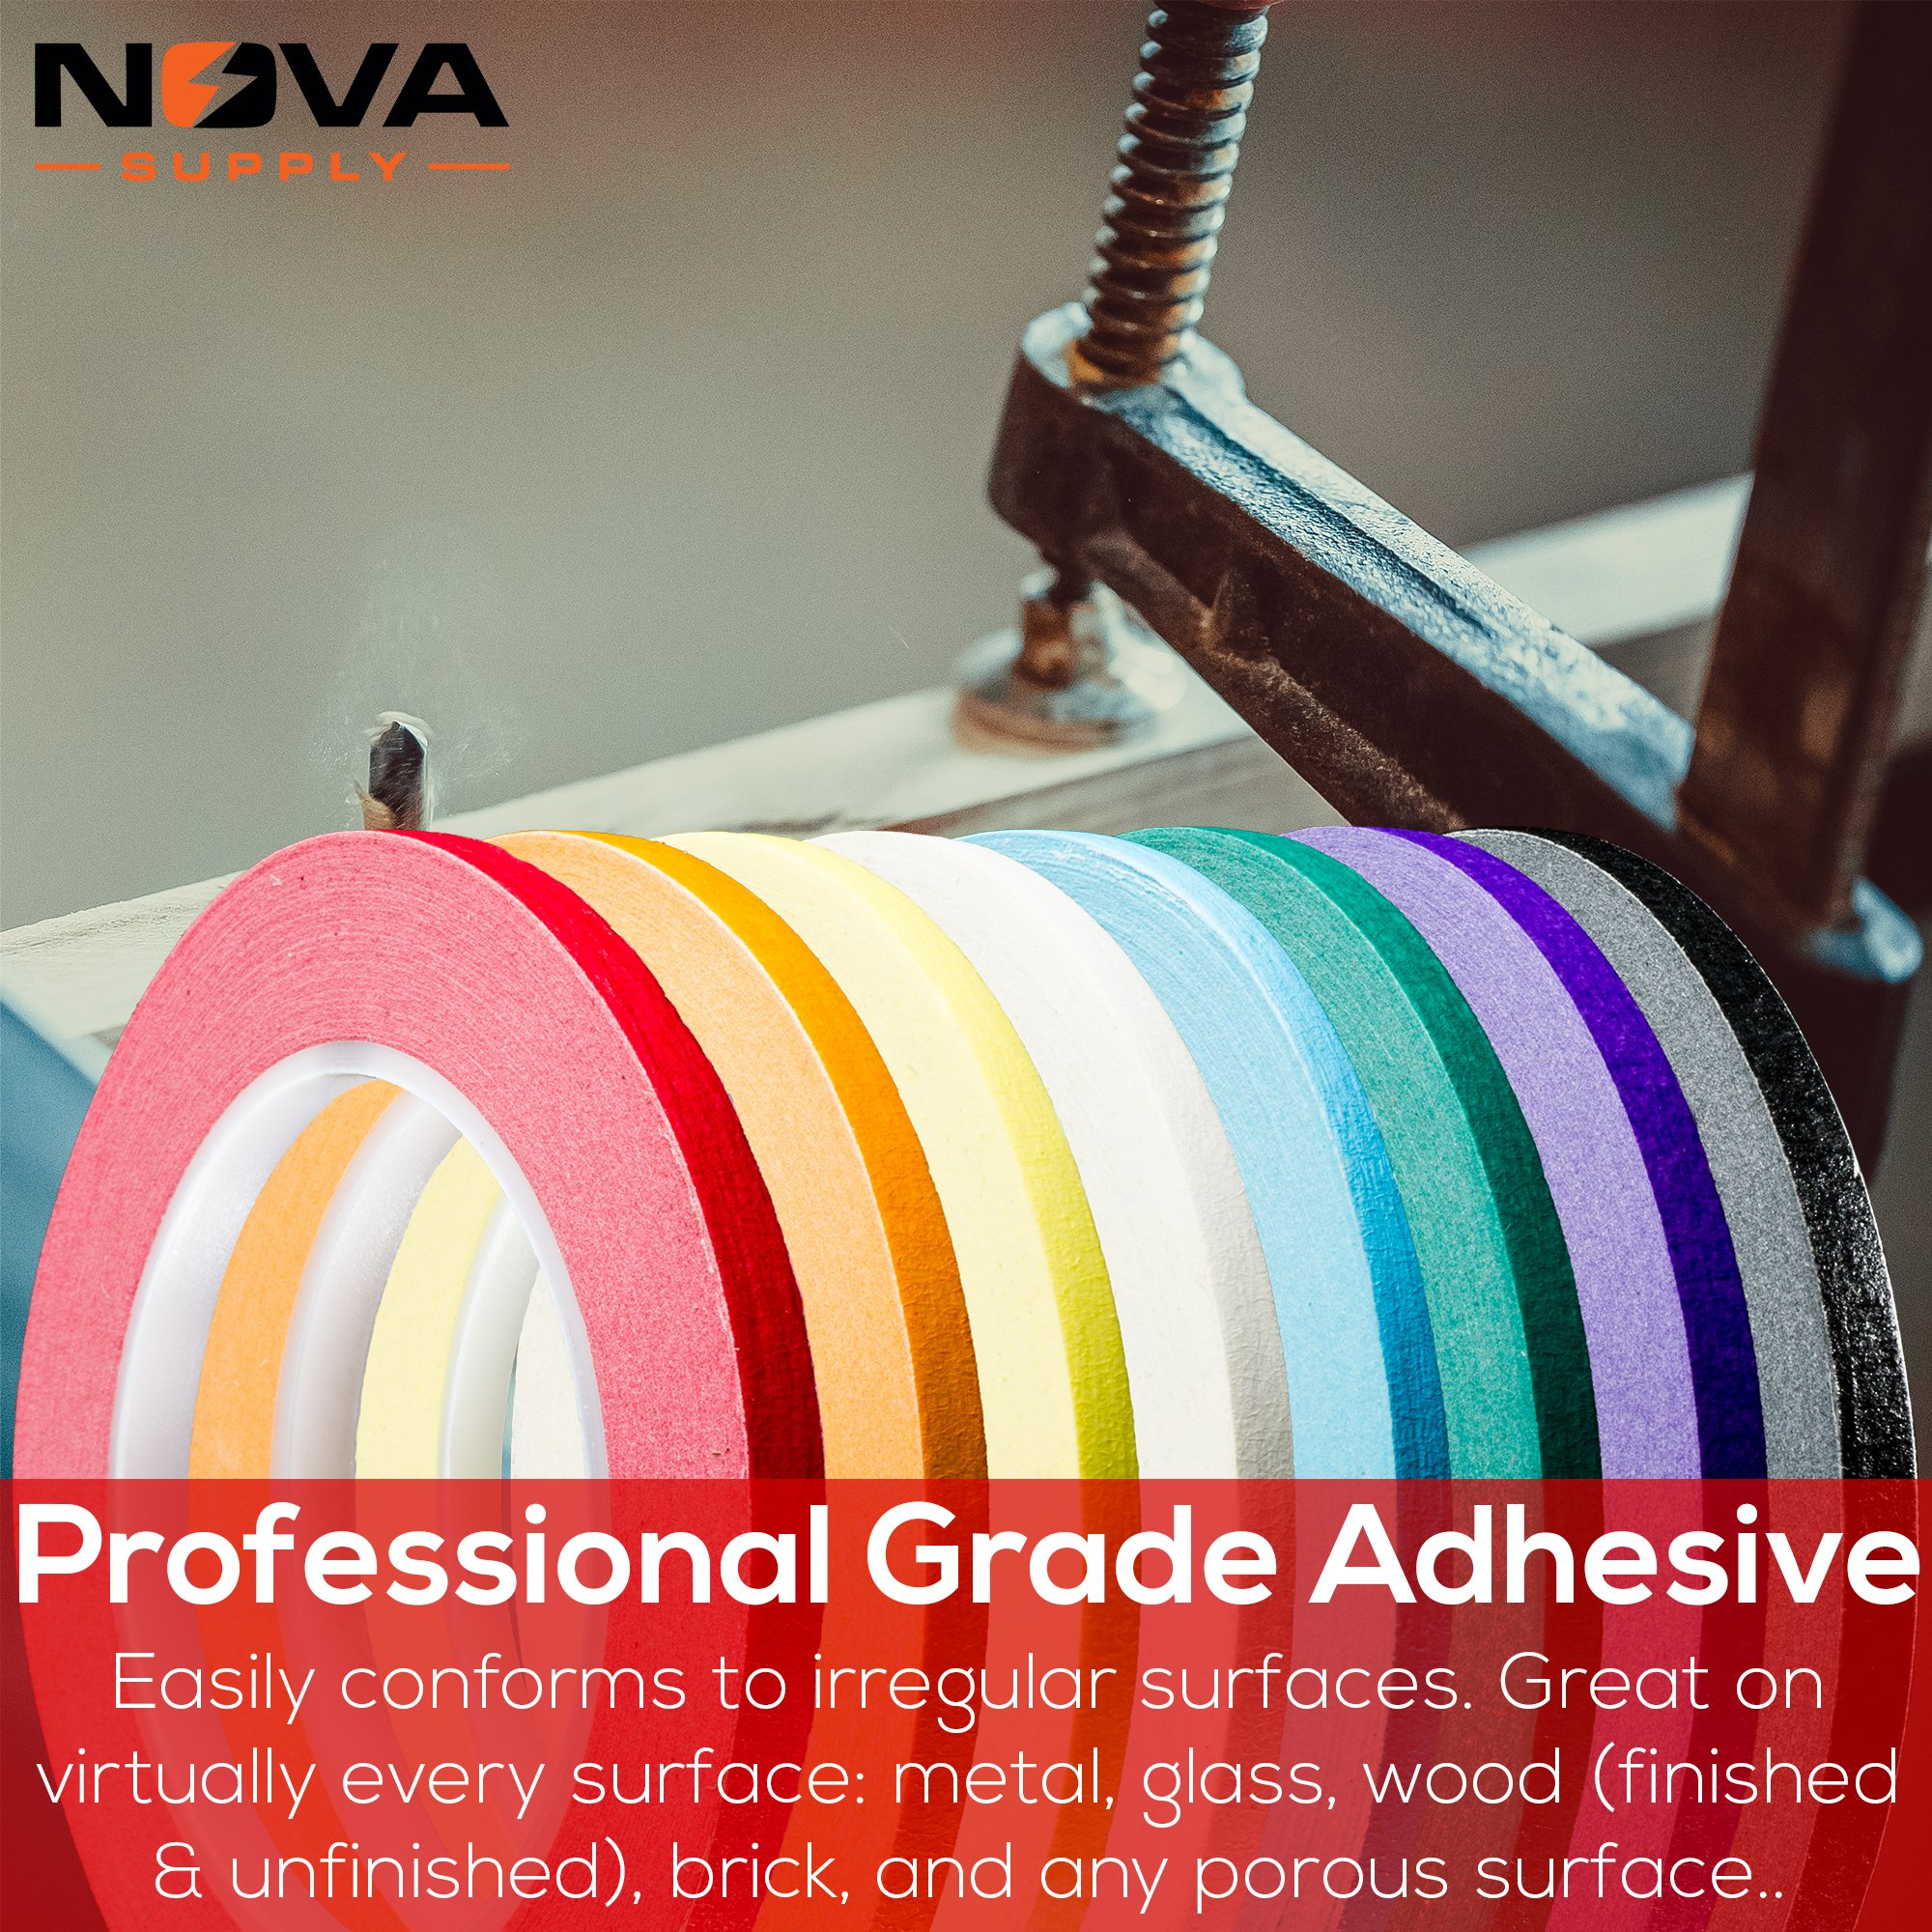 Nova Supplys 1/4in x 60yd Masking Tape, 8 Color Value Pack. Professional Grade Adhesive is Super Thin, Conforms to Irregular Surfaces, Is Easy to Tear & Release for Labeling, Painting, & Decorating. by Nova (Image #4)